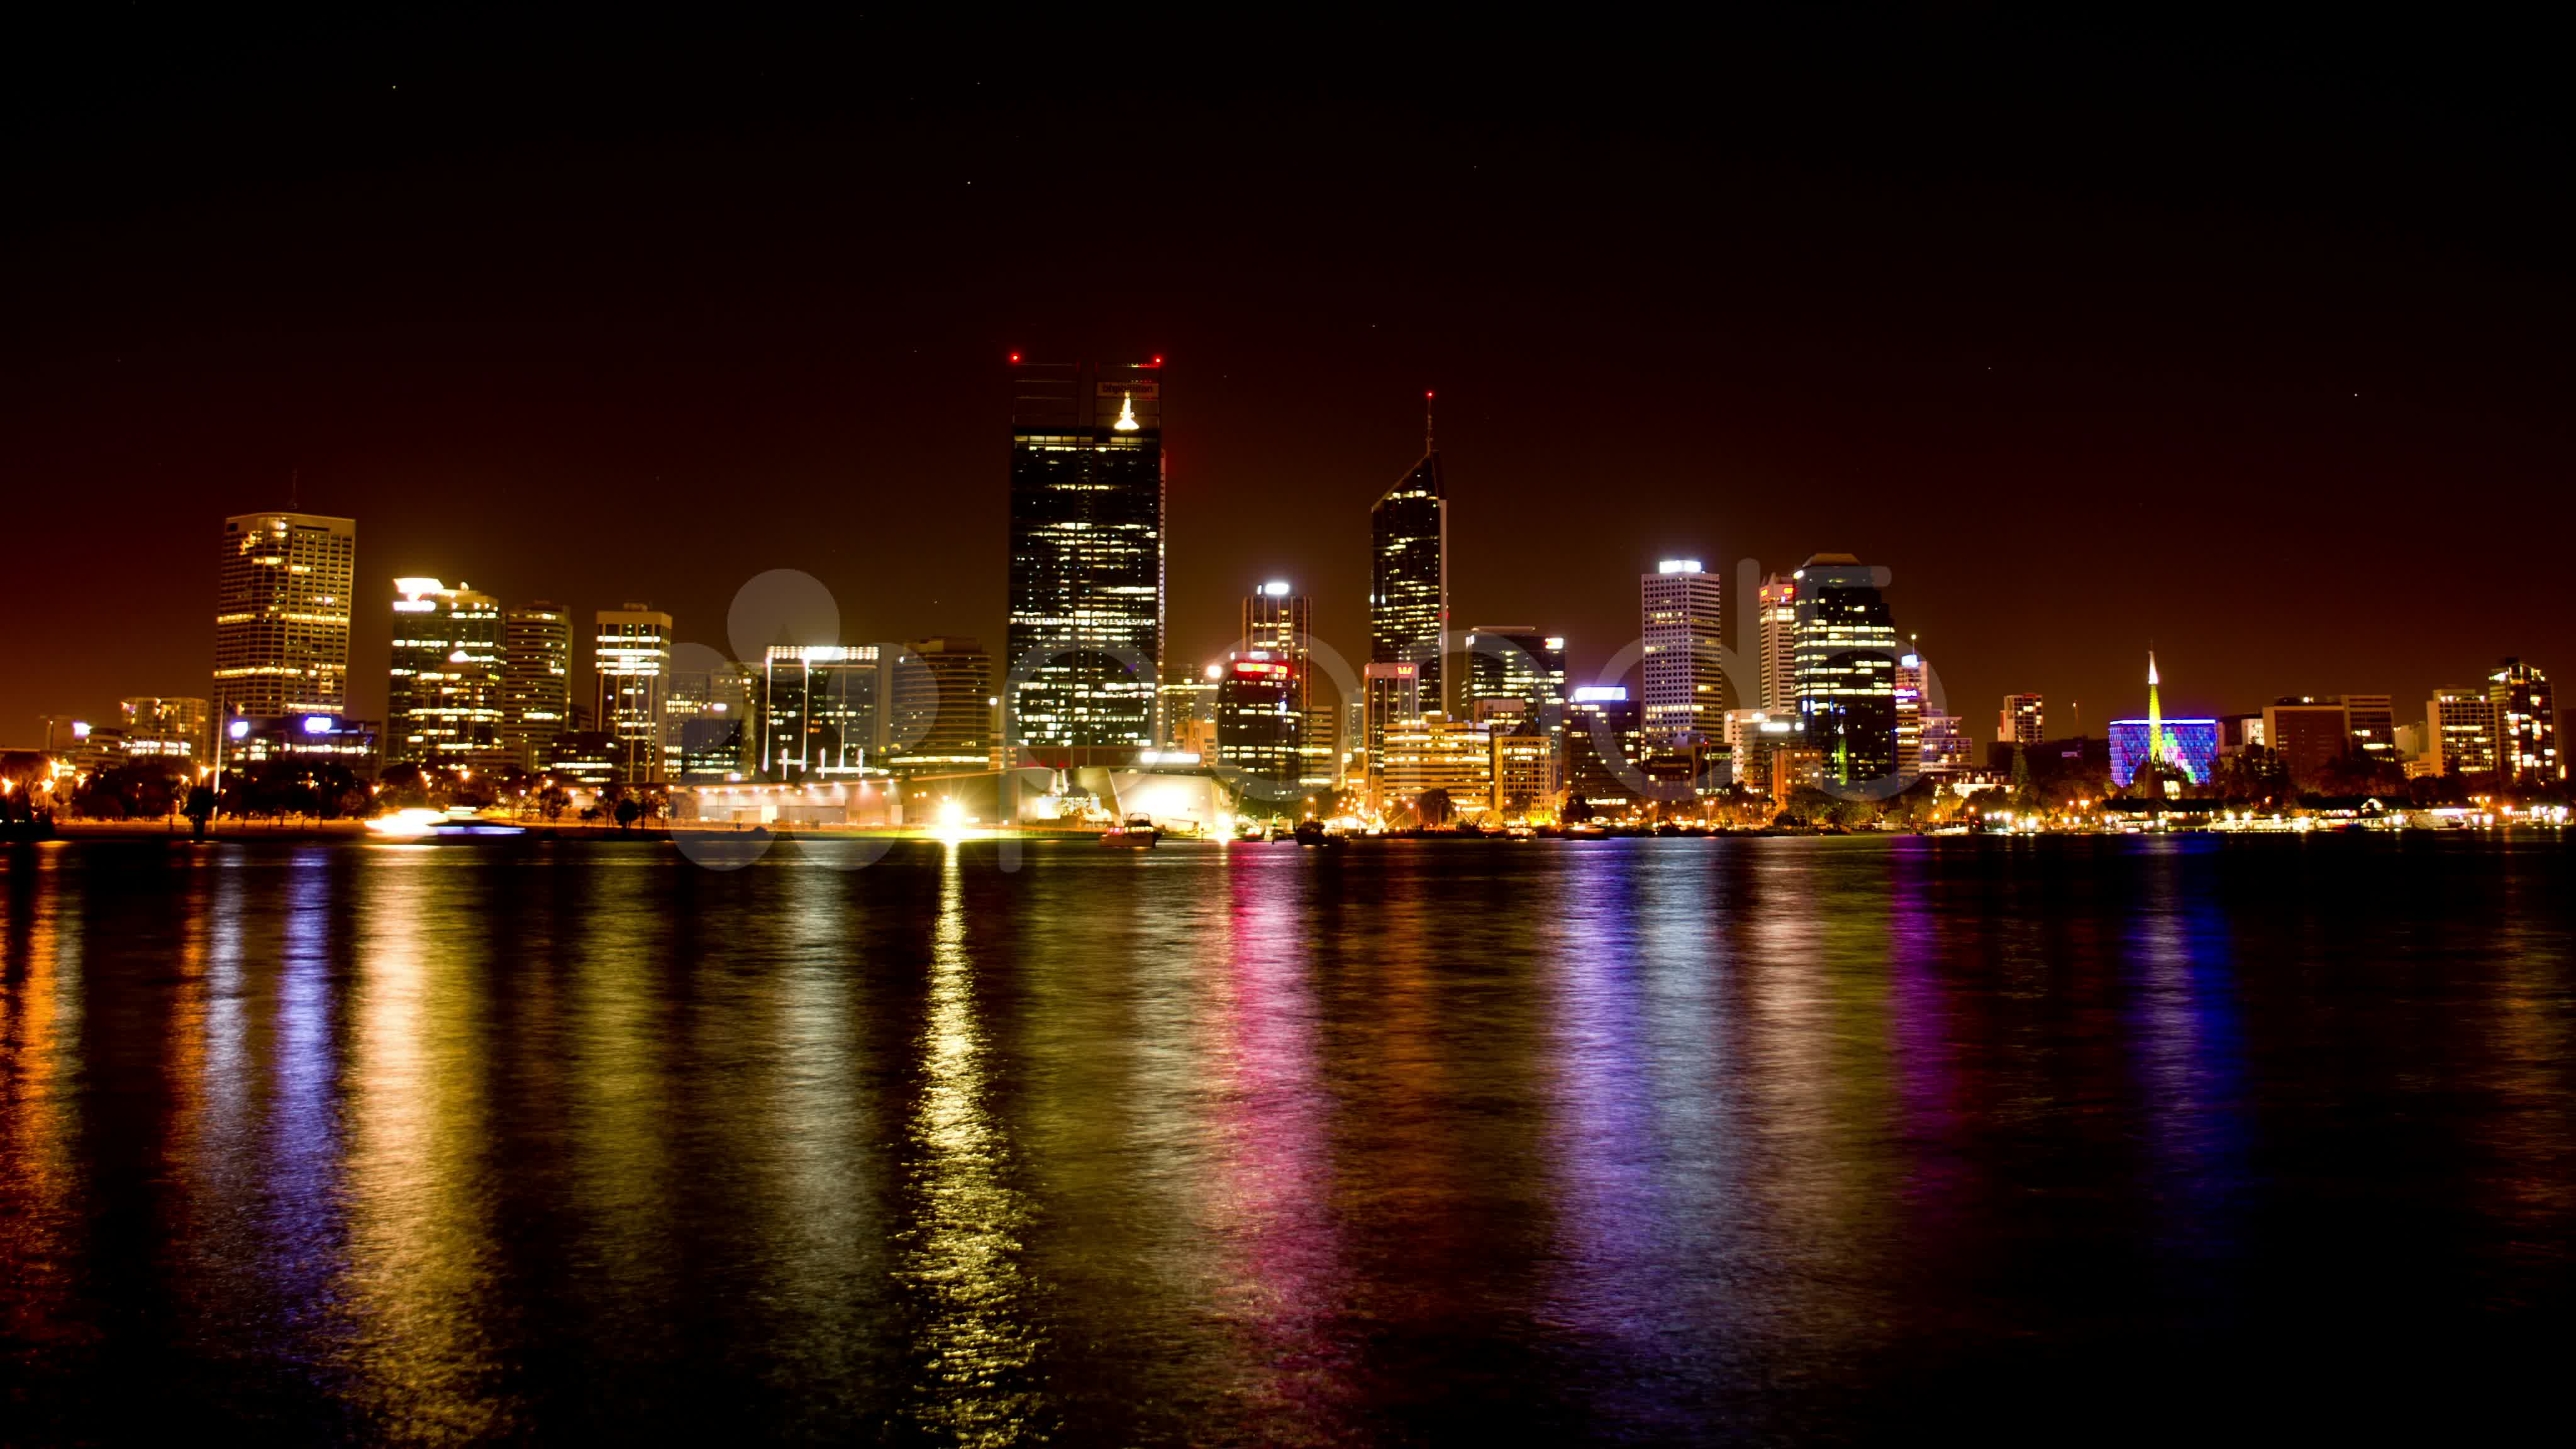 Perth City Night Lights Time Lapse   Perth Stock Footage 4096x2304